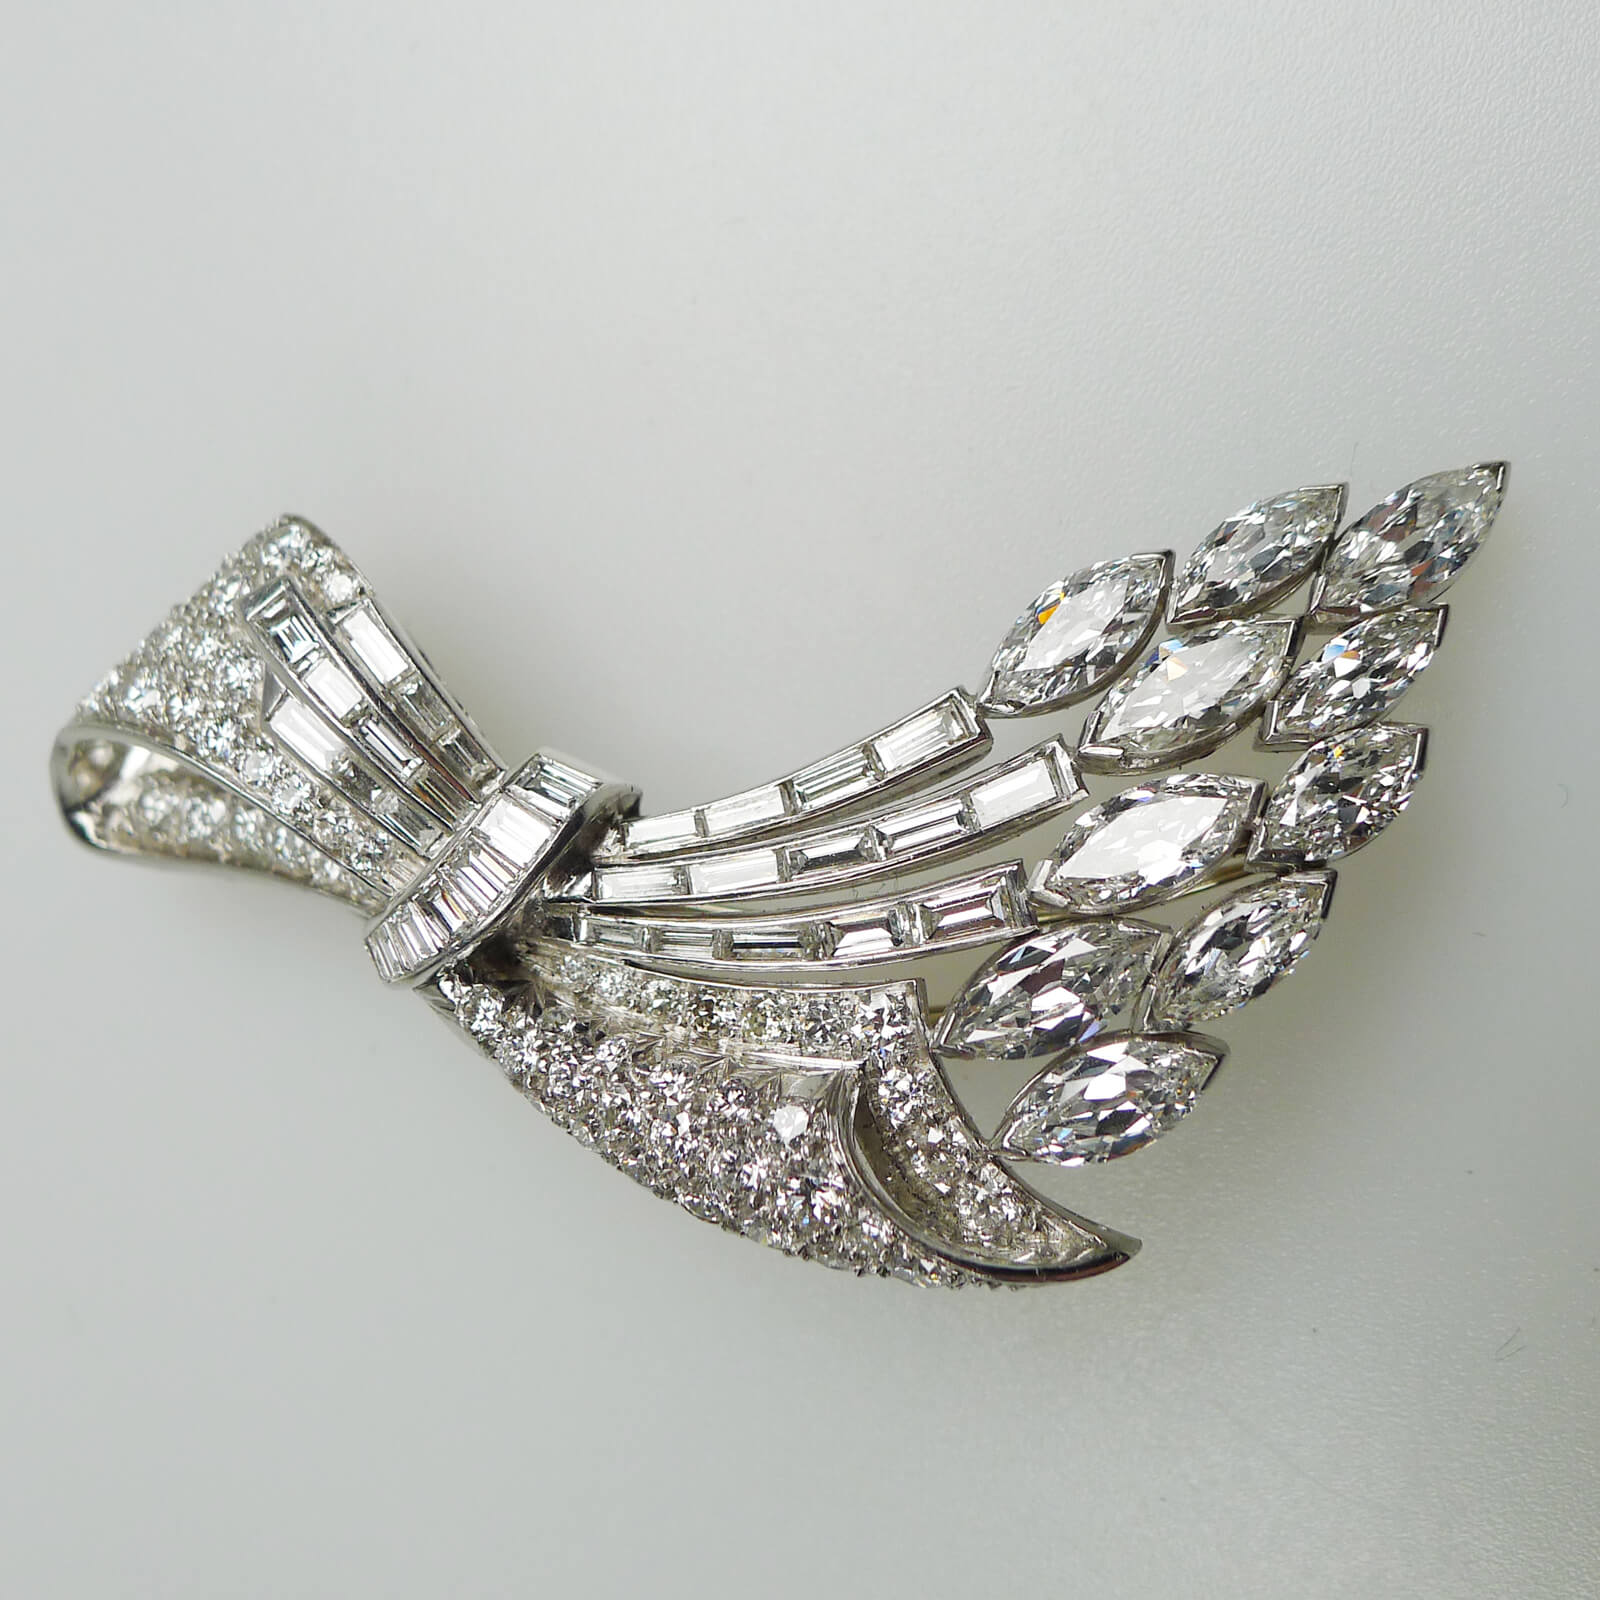 Bring out the Luxury and Style by using a Diamond Brooch for Dressing